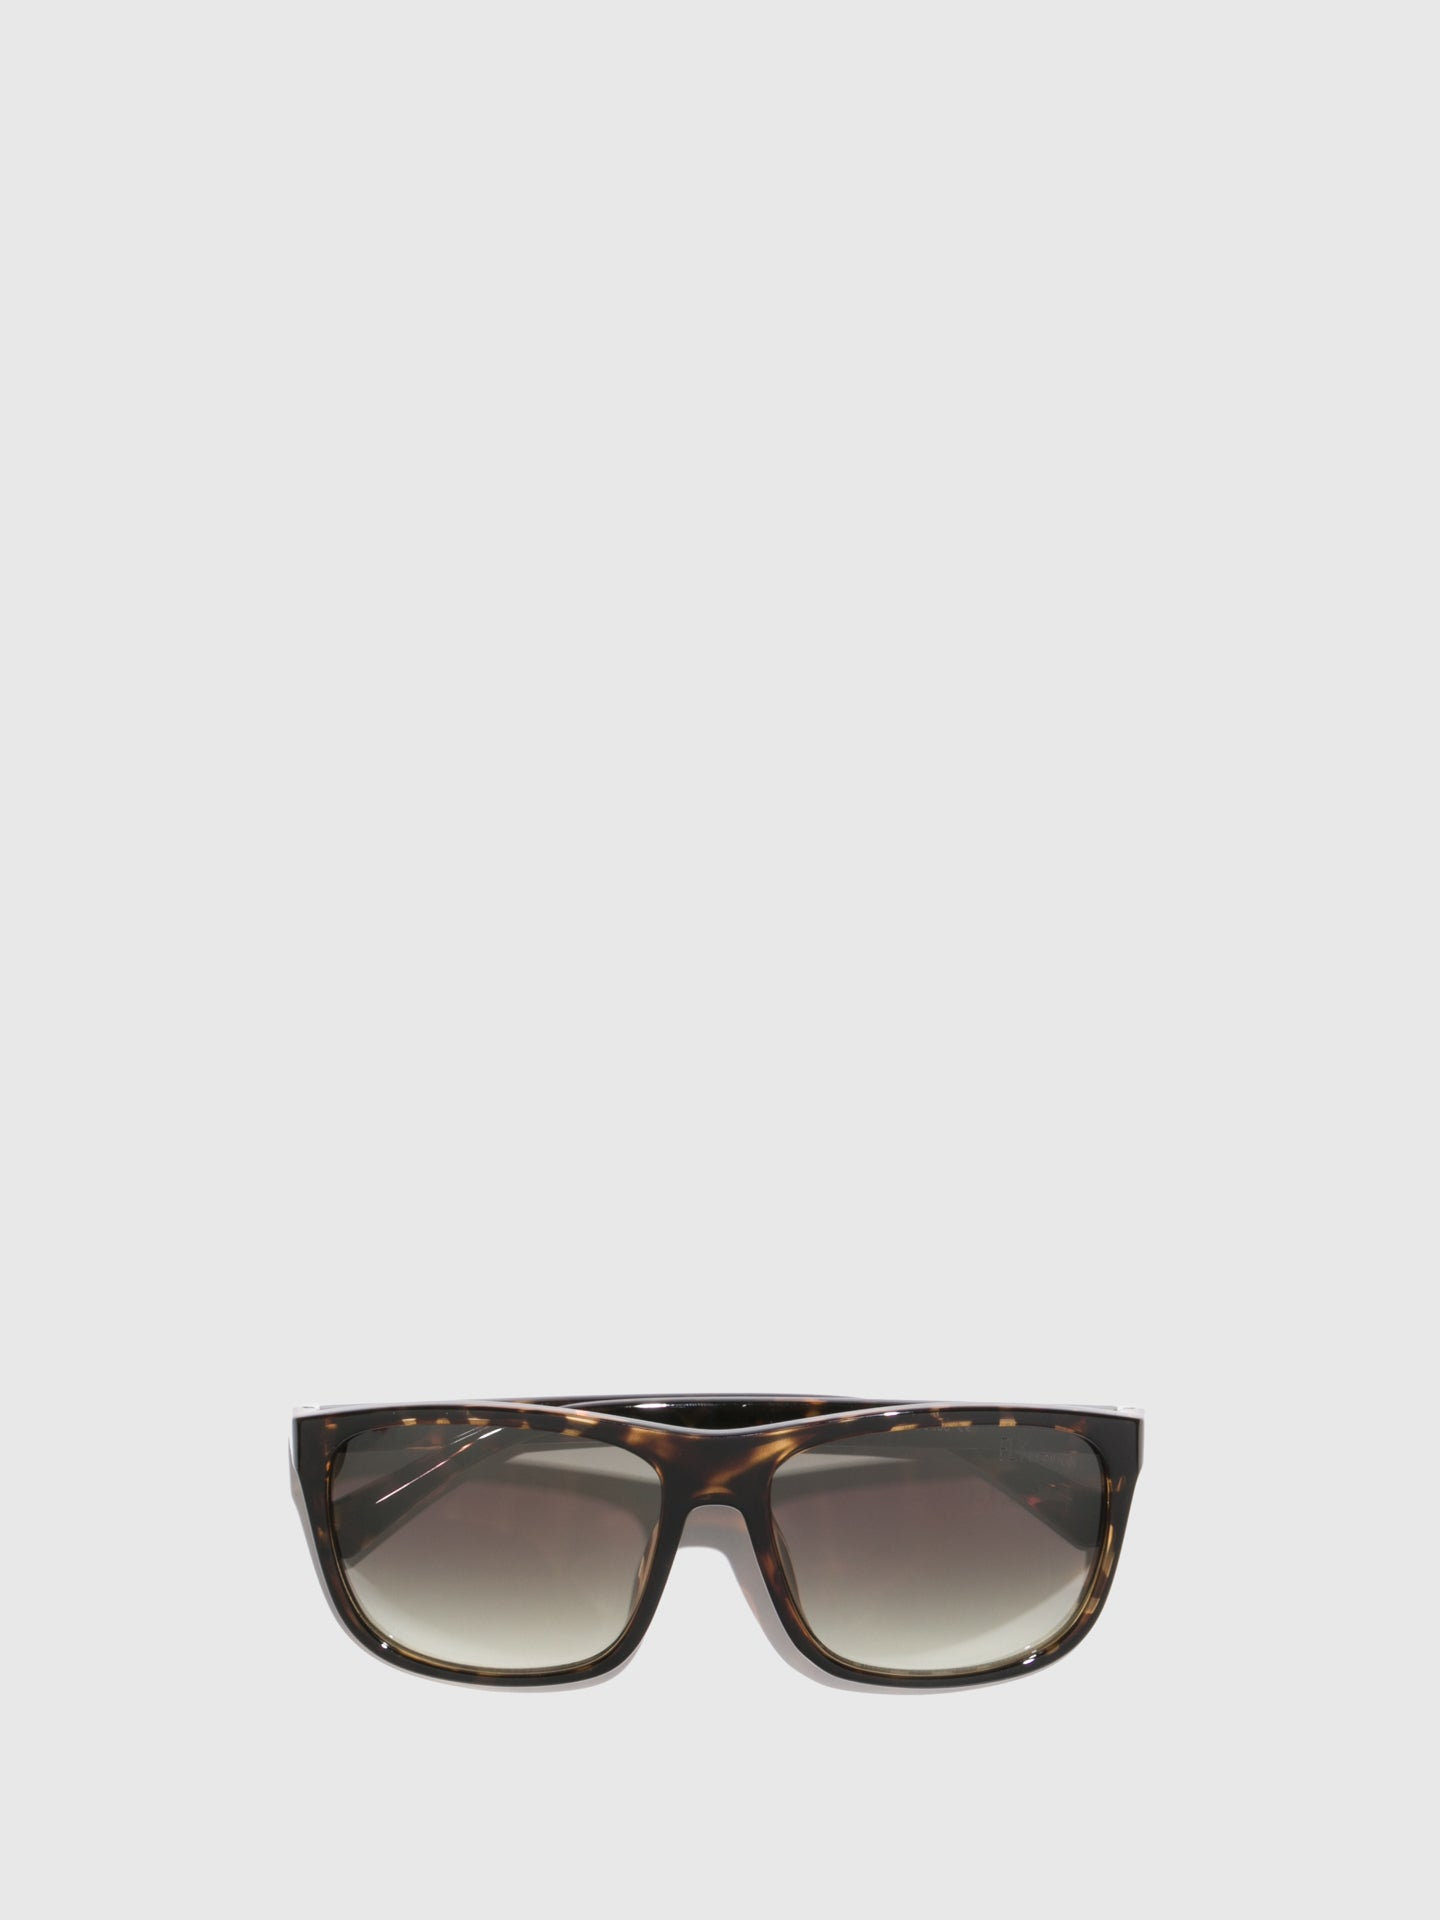 Fly London Brown Rectangular Sunglasses